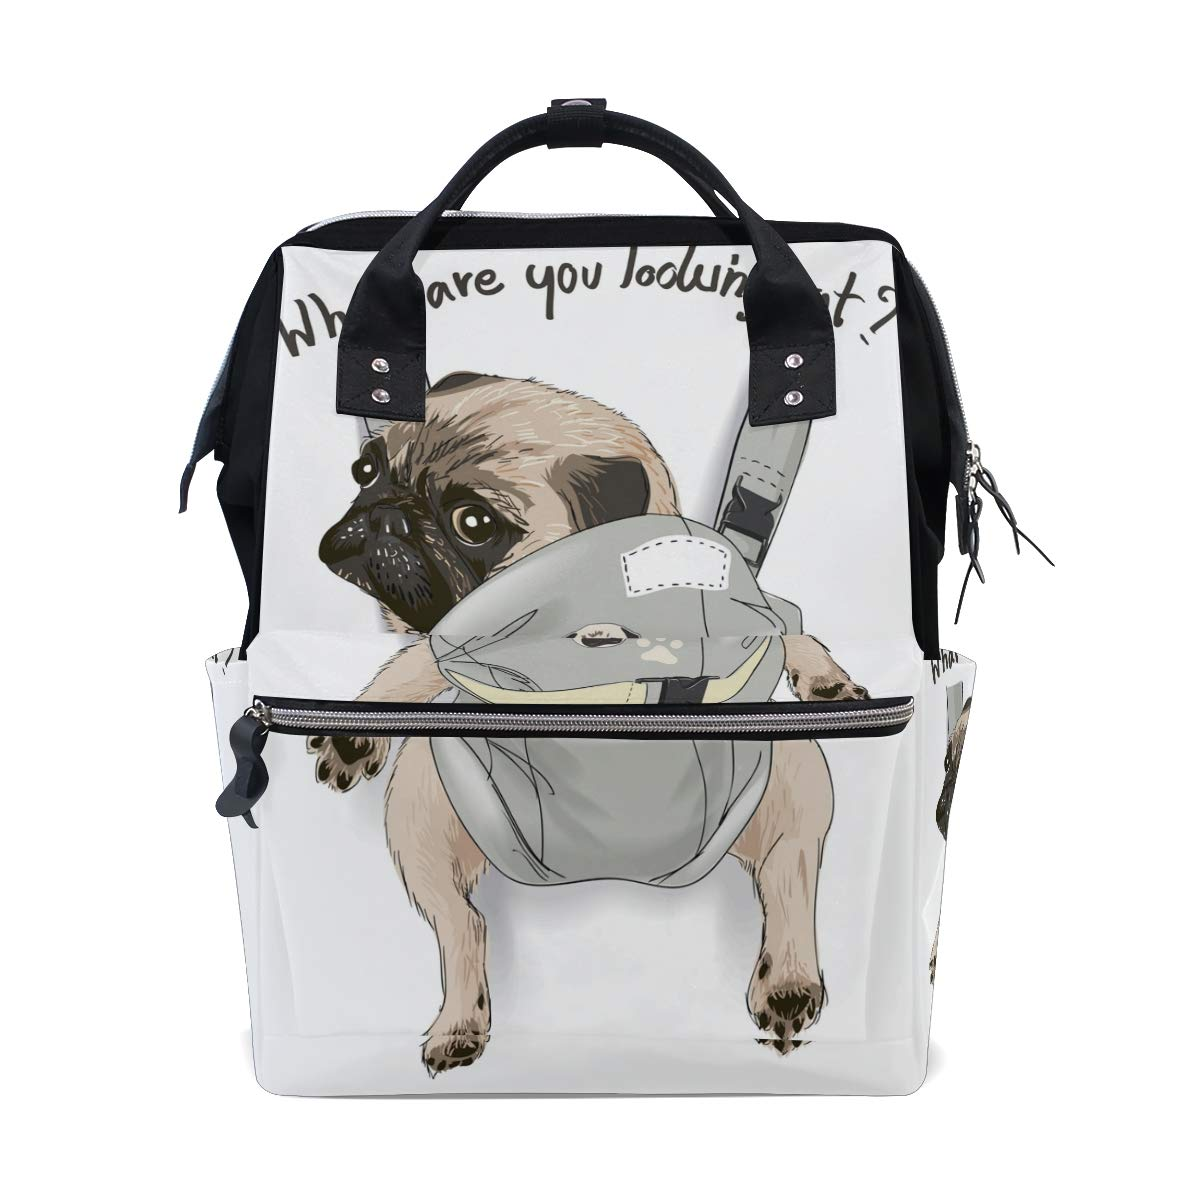 MERRYSUGAR Diaper Bag Backpack Travel Bag Large Multifunction Waterproof Cute Puppy Dog Pug Funny White Stylish and Durable Nappy Bag for Baby Care School Backpack